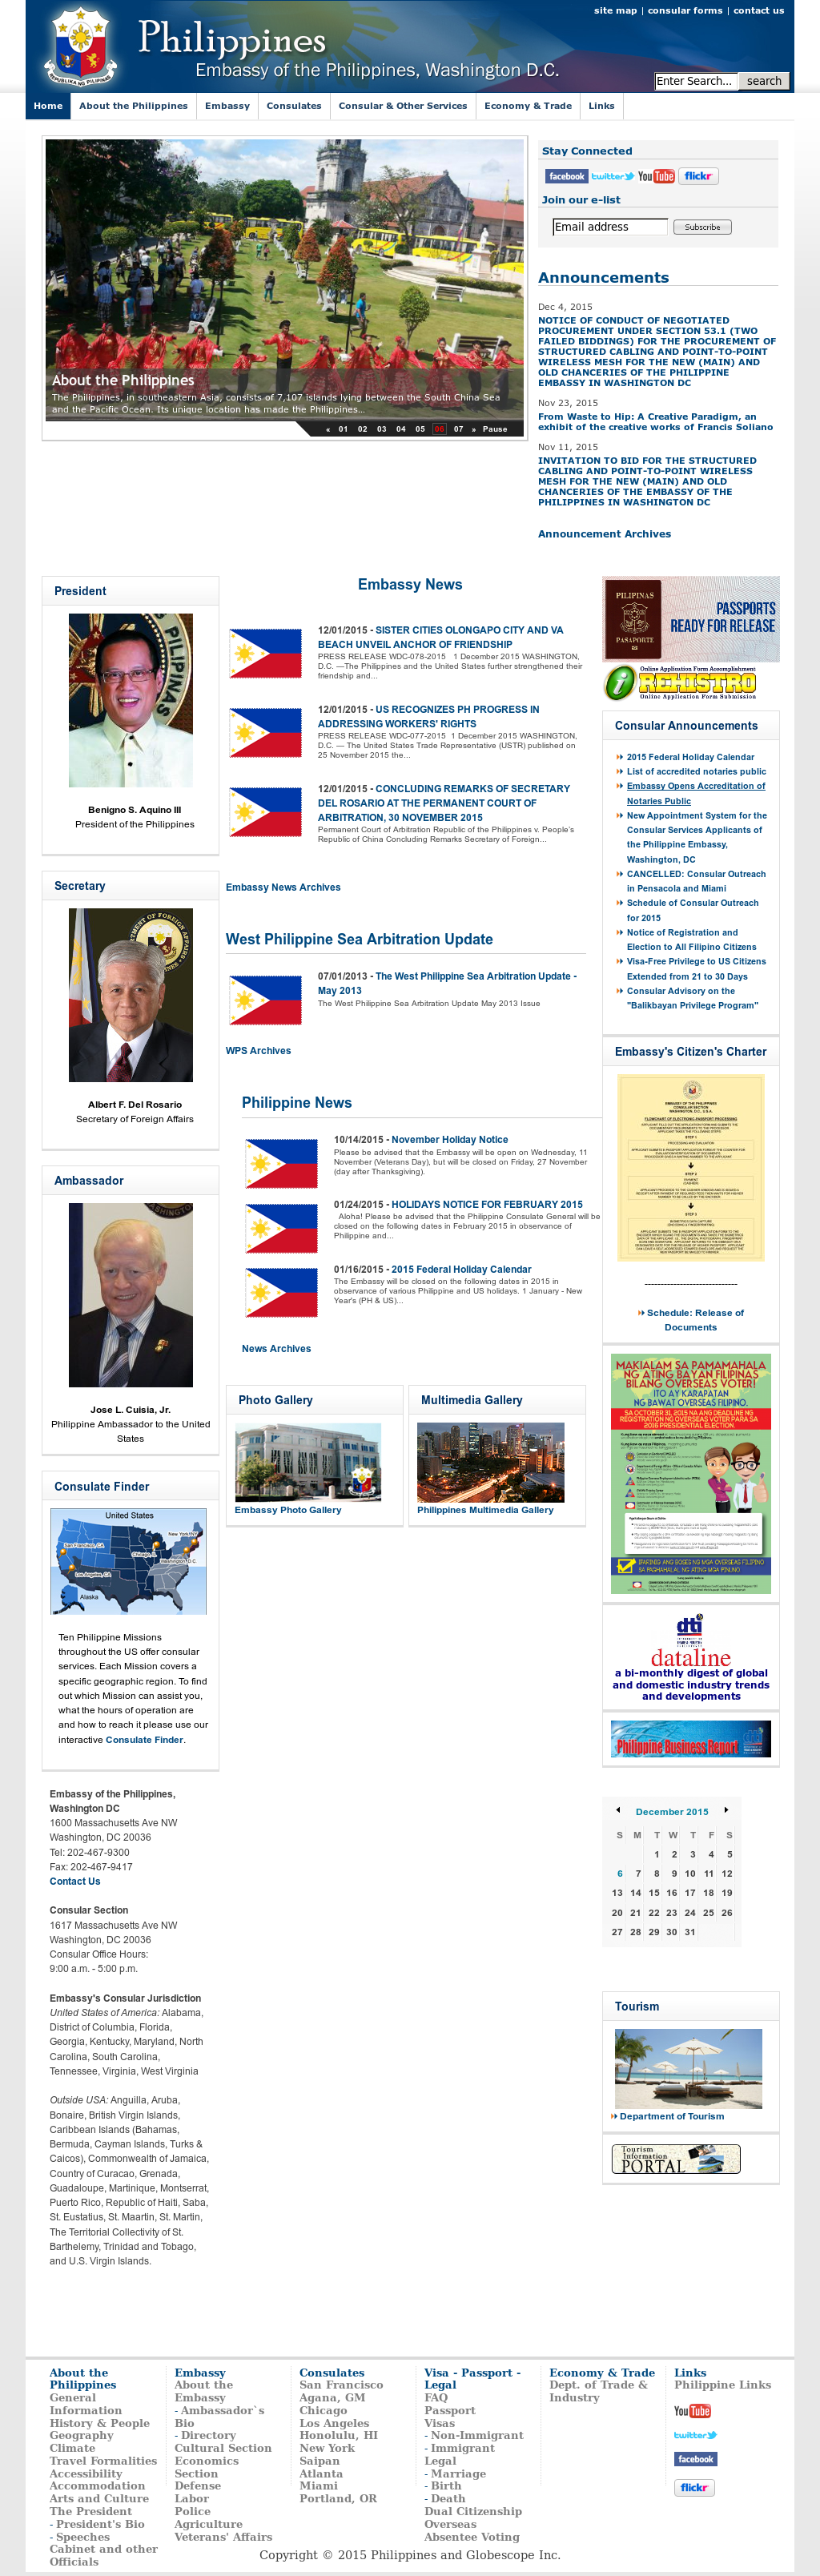 Philippines Embassy Competitors, Revenue and Employees